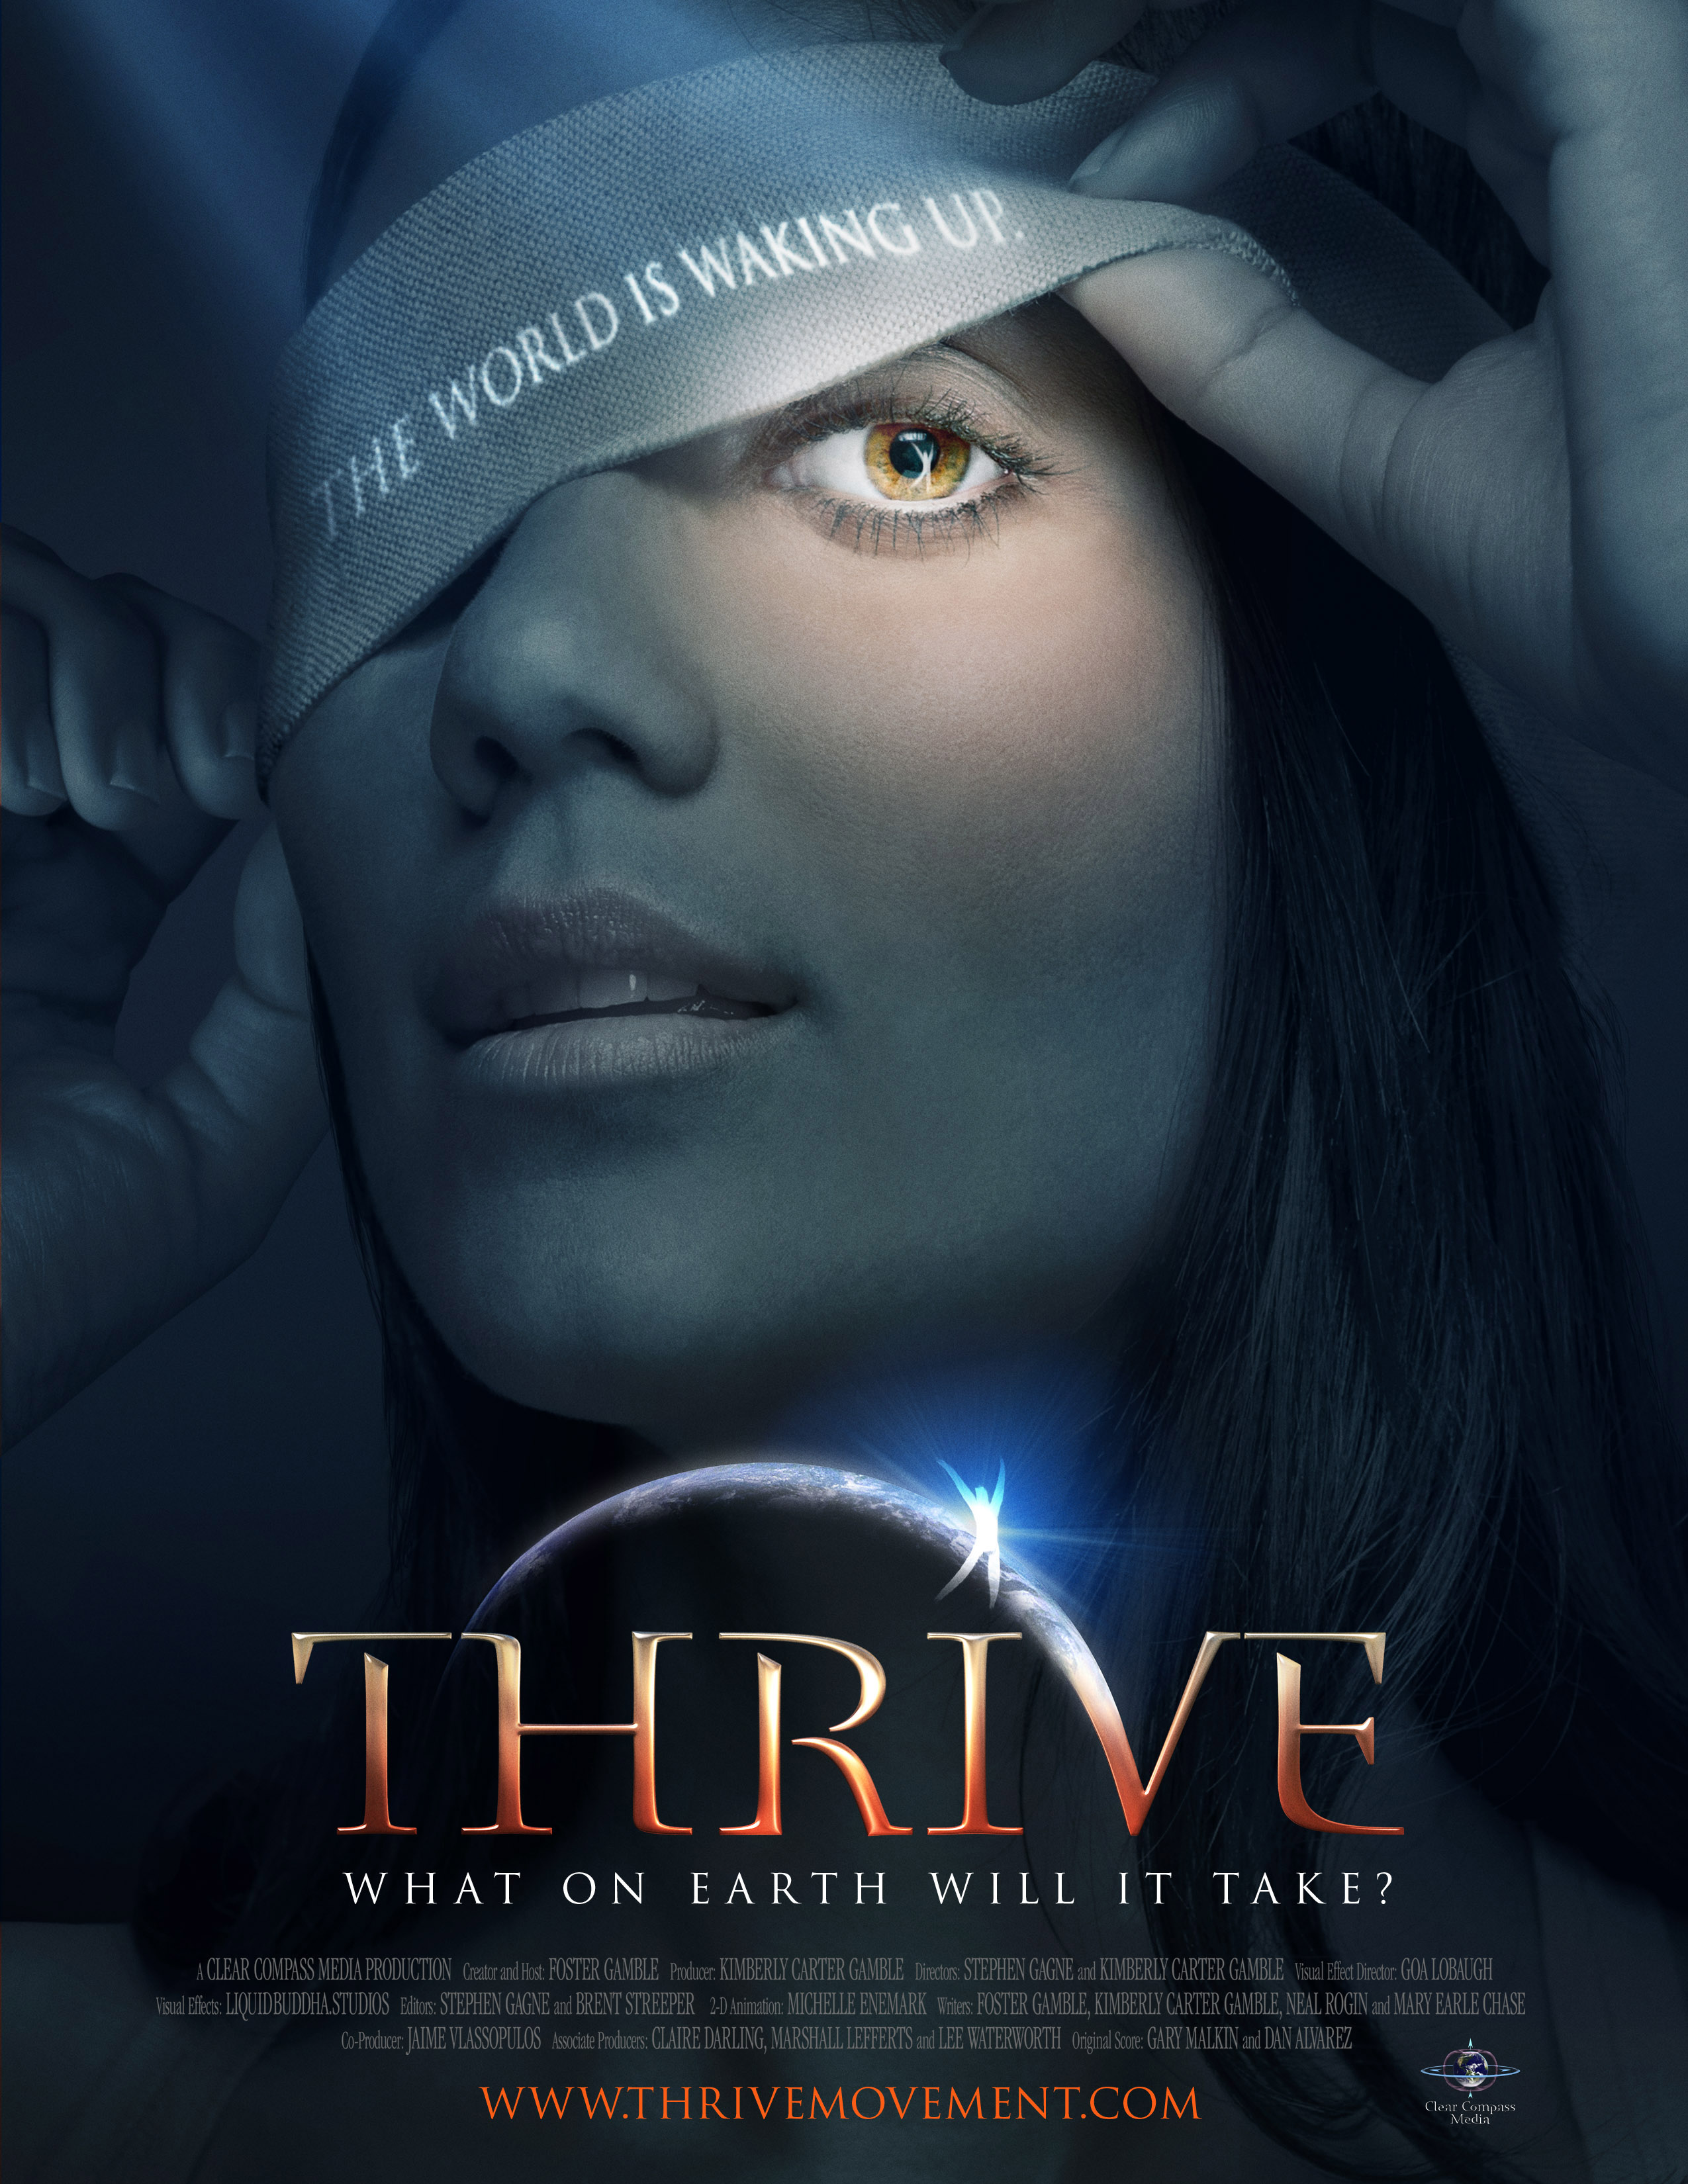 THRIVE Movie An Unconventional Documentary That Lifts The Veil On Whats REALLY Going In Our World By Following Money Upstream Uncovering